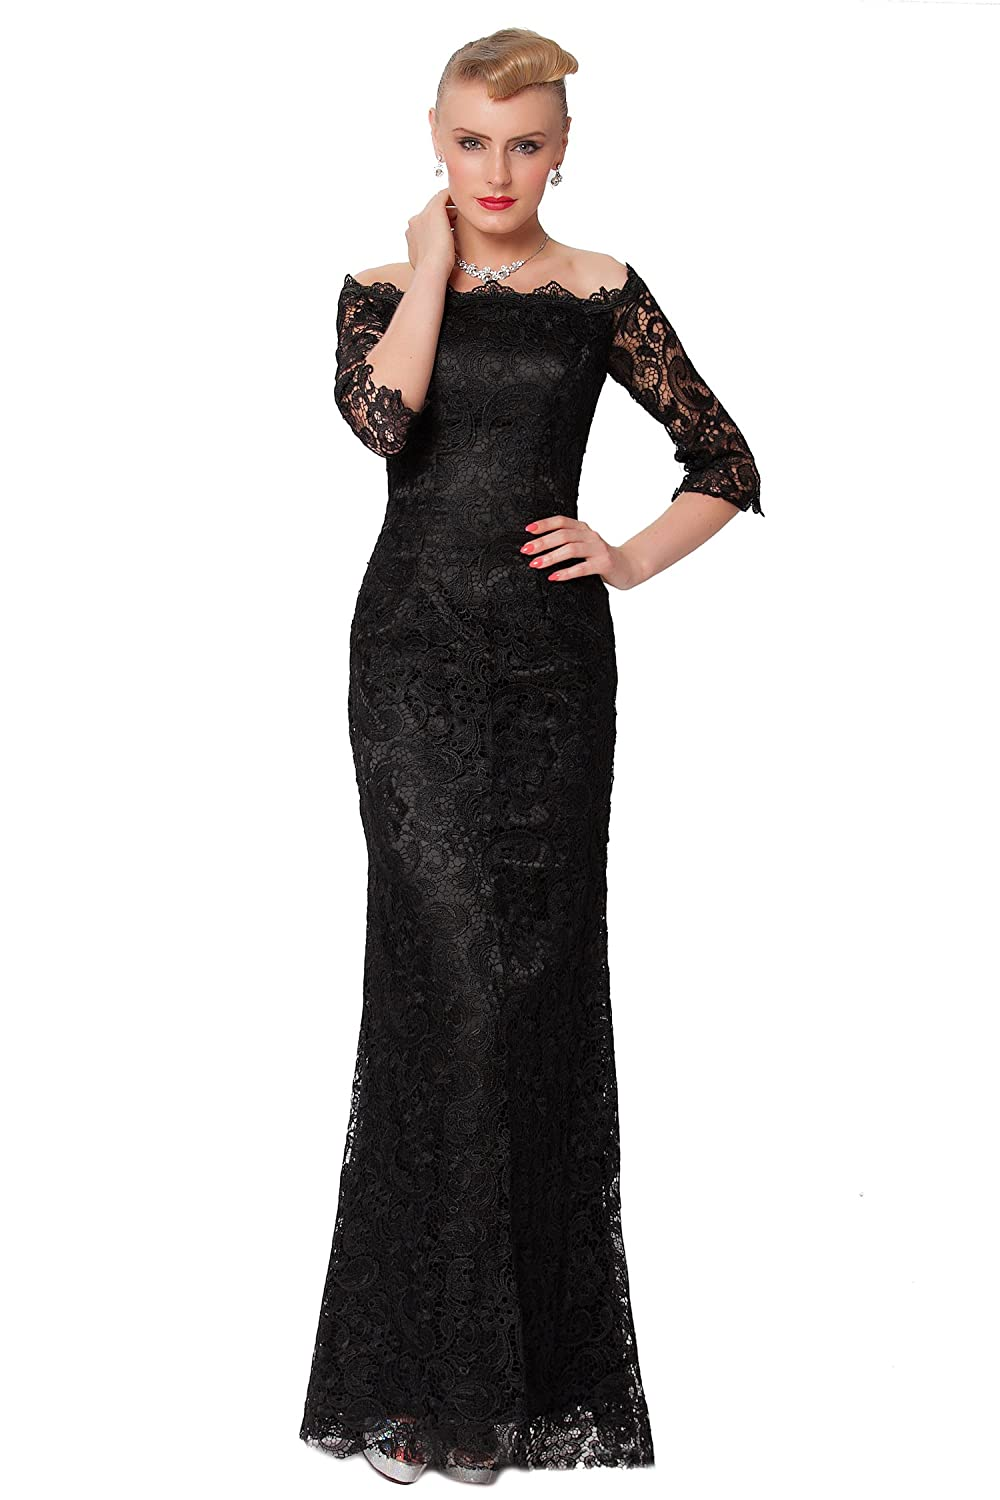 SEXYHER Charming Lace Covered Long Evening Bridesmaid Dress - EDYP8001